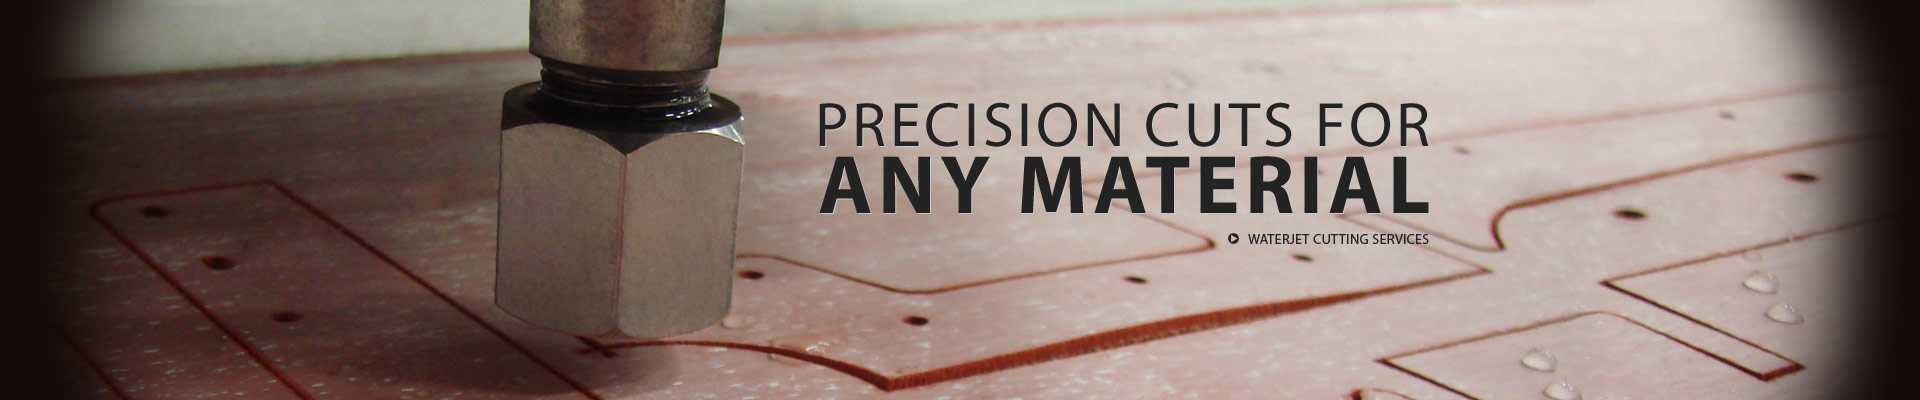 Precision Cuts For Any Material | Waterjet Cutting Services